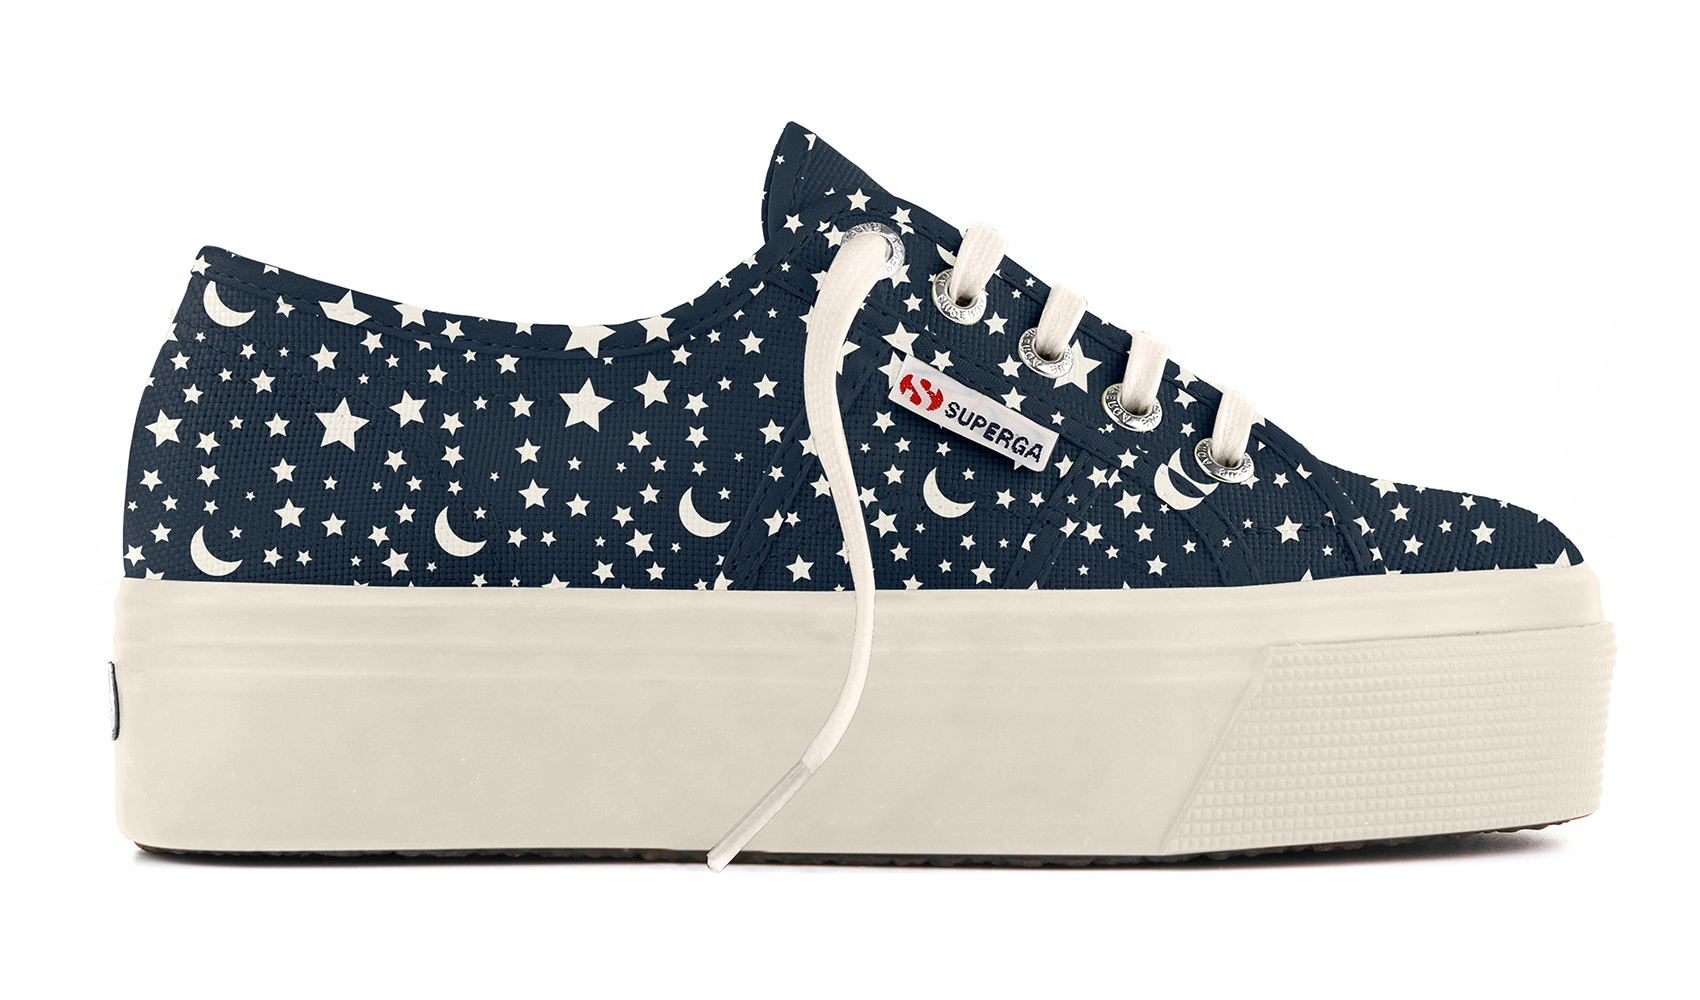 Van Fashion For Less 2790 Fancotw 905 Starry Night Prijsvergelijk nu!